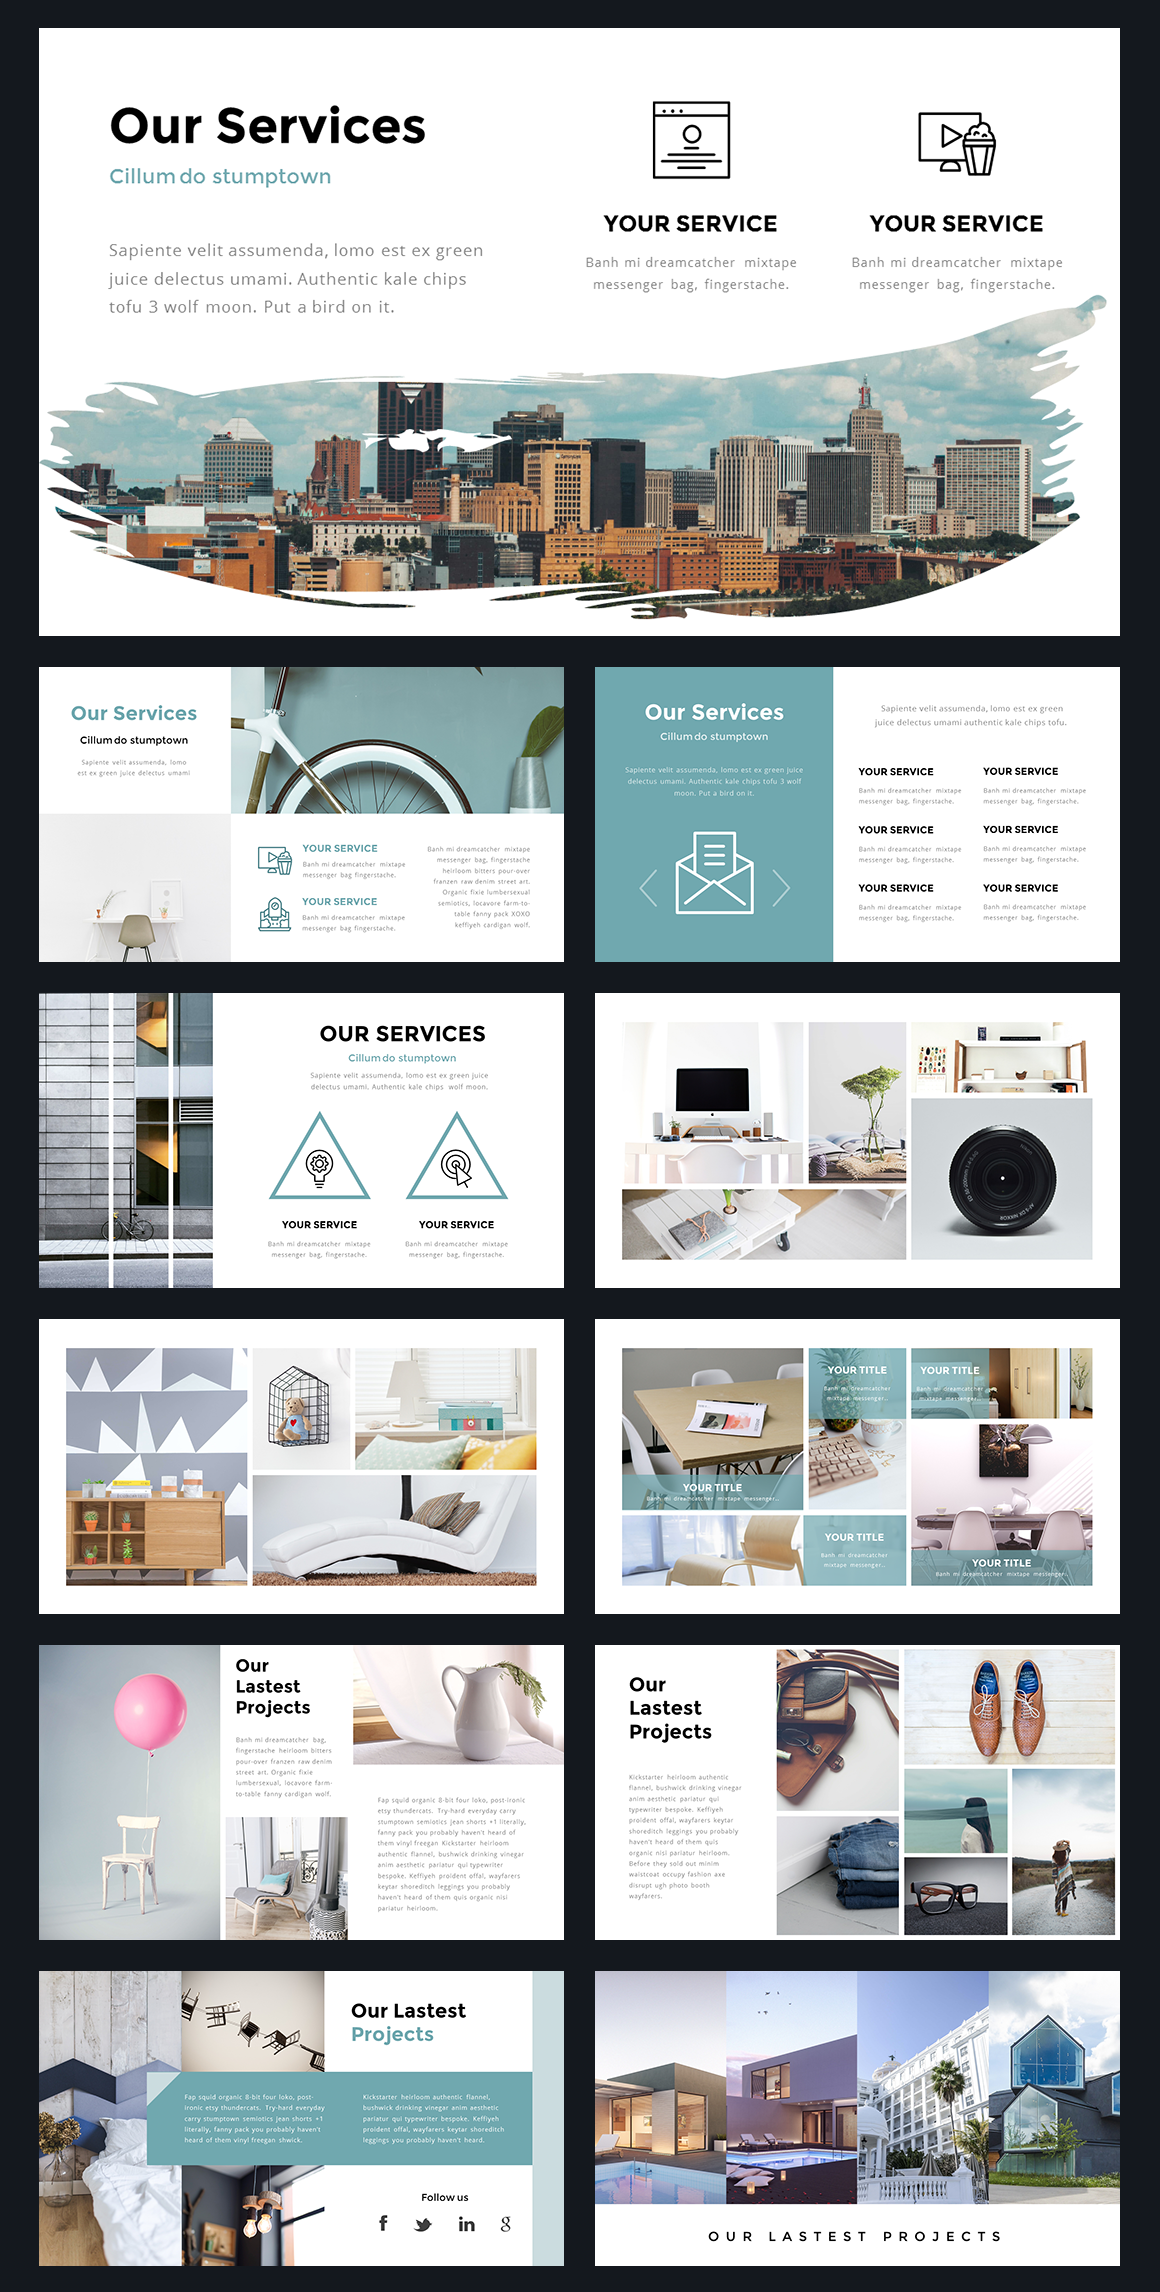 portal modern powerpoint template by thrivisualy on creativemarket ppt pinterest portal. Black Bedroom Furniture Sets. Home Design Ideas